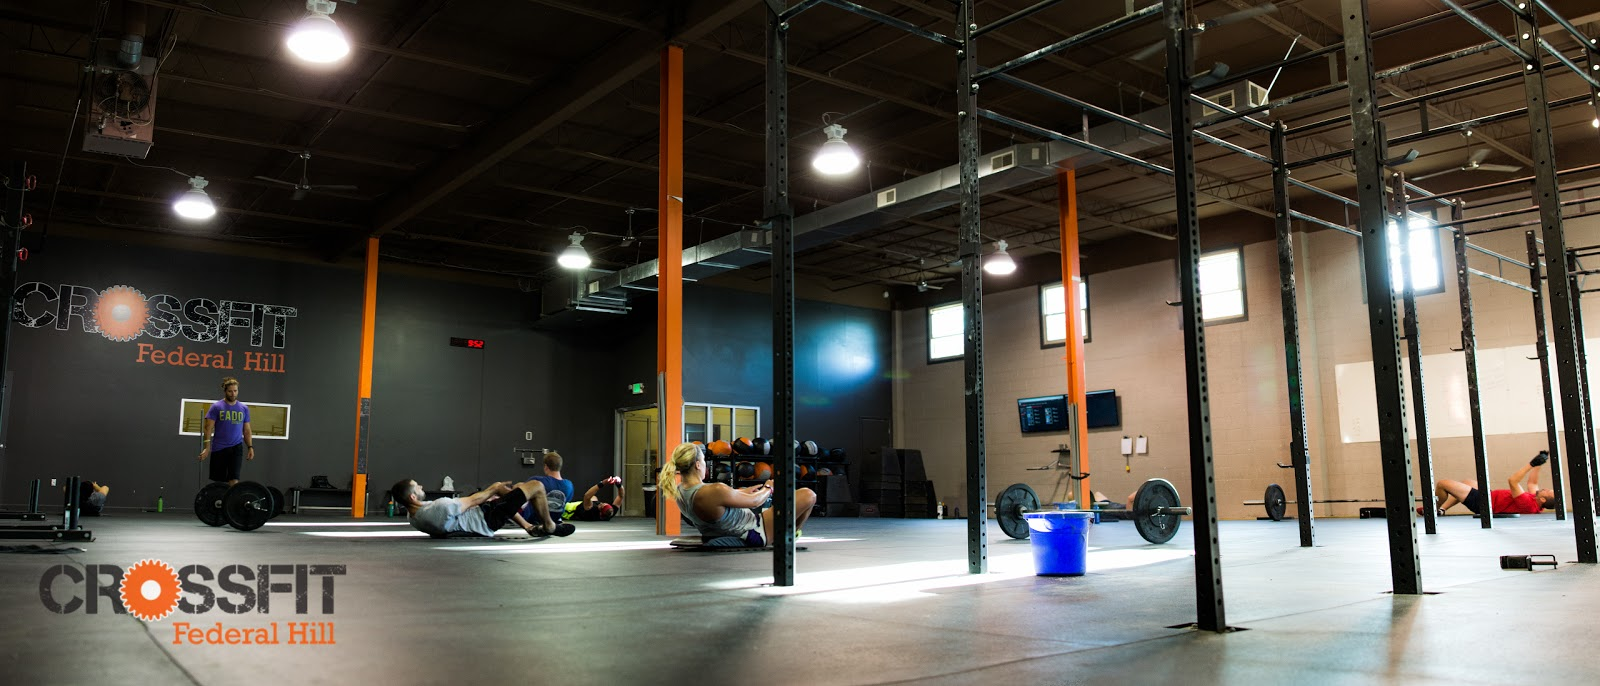 CrossFit Federal Hill - photo